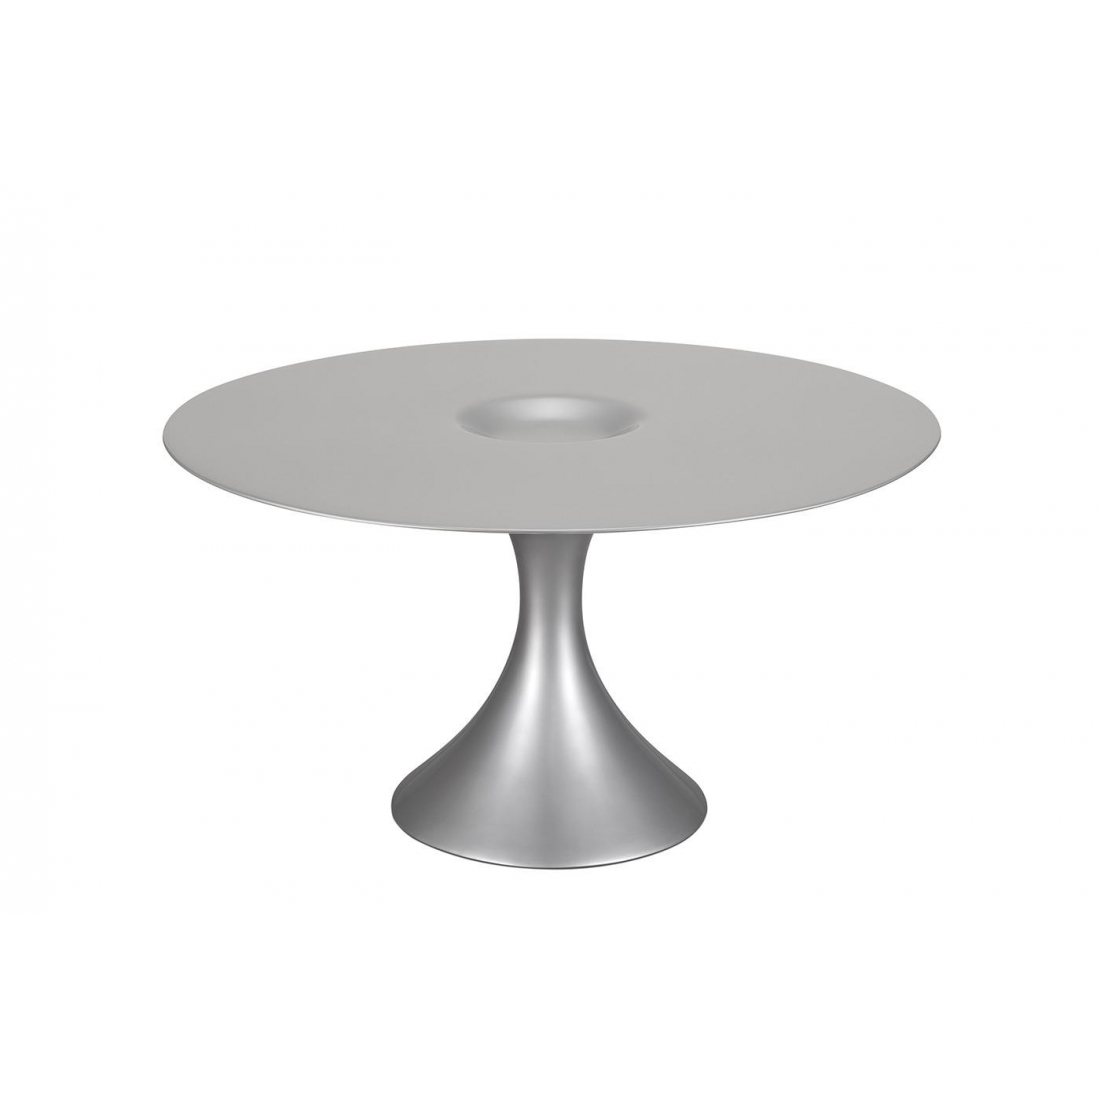 Table salle a manger ronde gaeaforms zendart design for Table de salle a manger design ronde